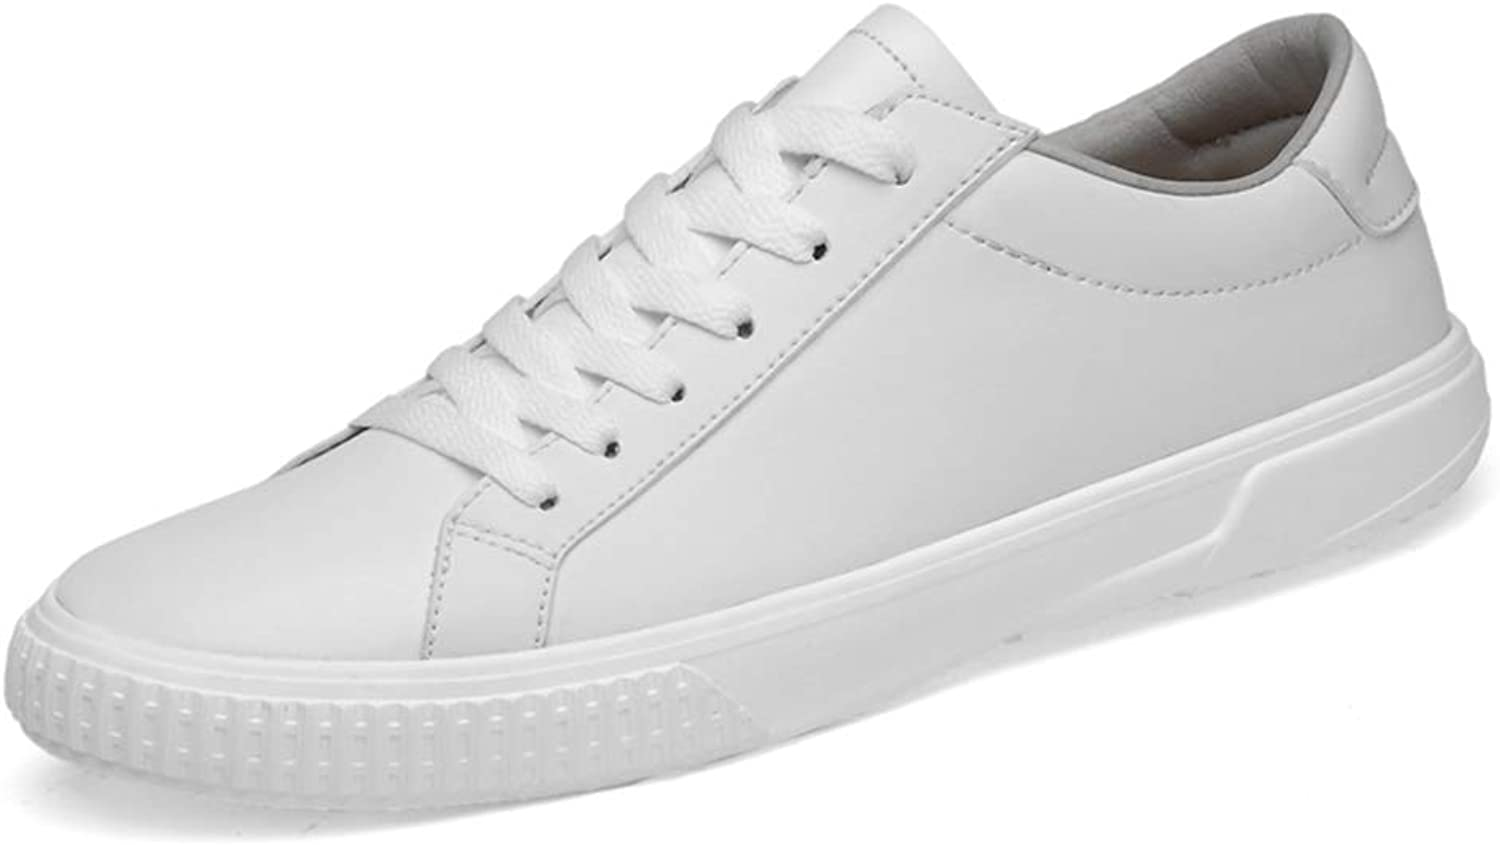 Men's Sneakers Oxford Casual shoes